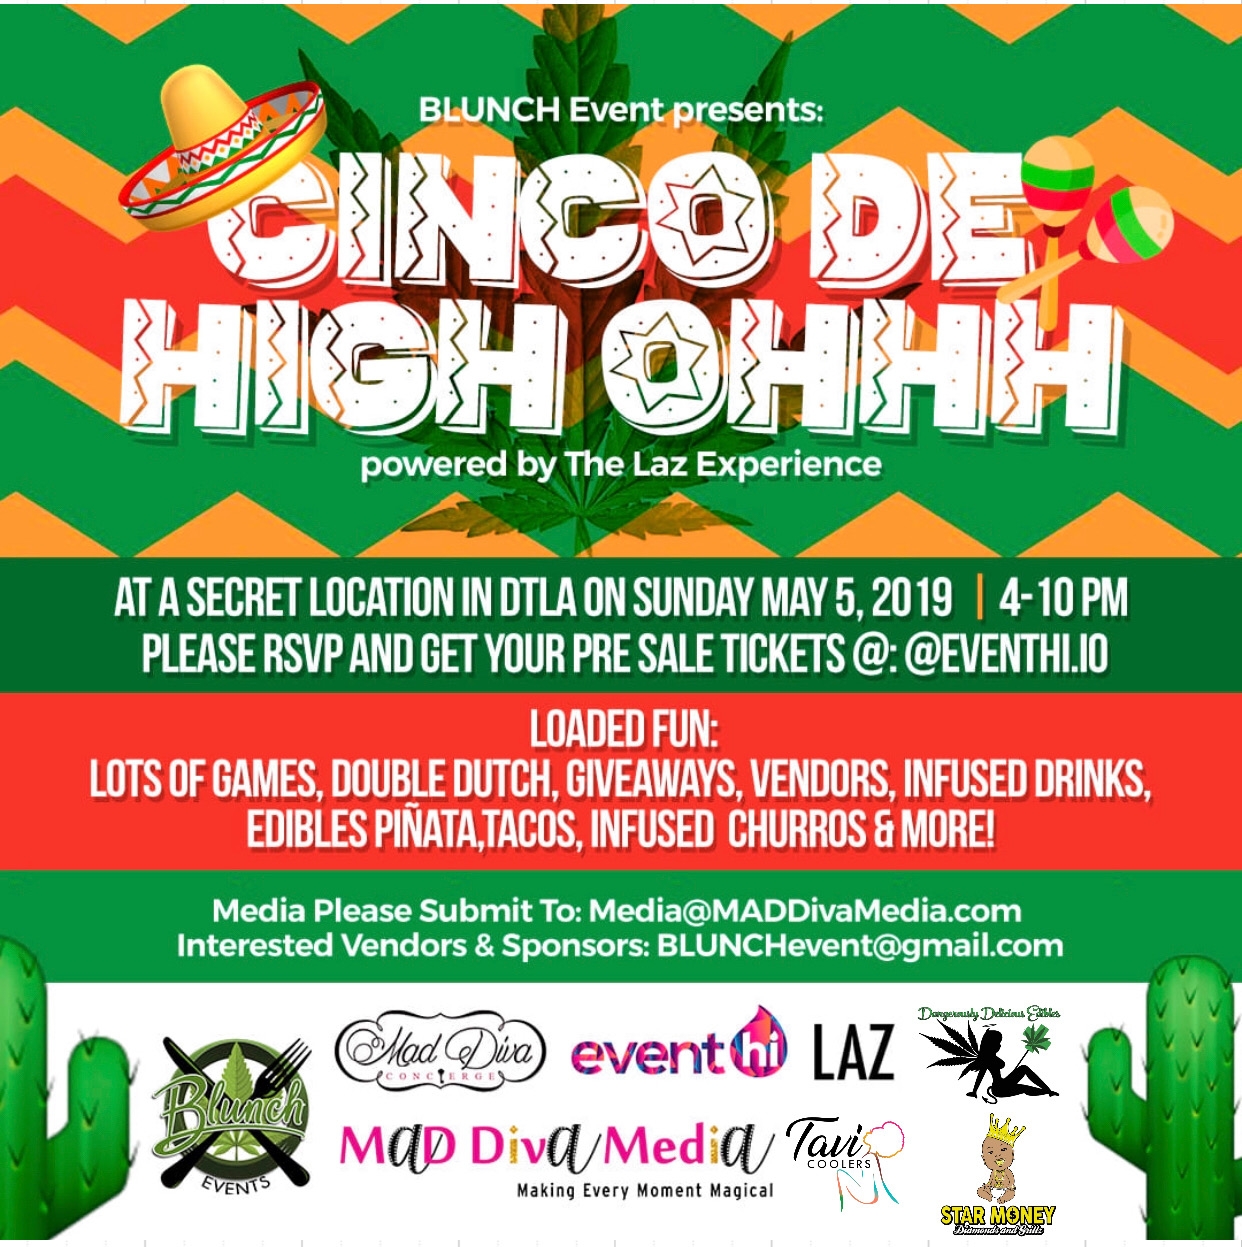 BLUNCHevent presents Cinco De High Ohhh Powered by The Lazarus Experience